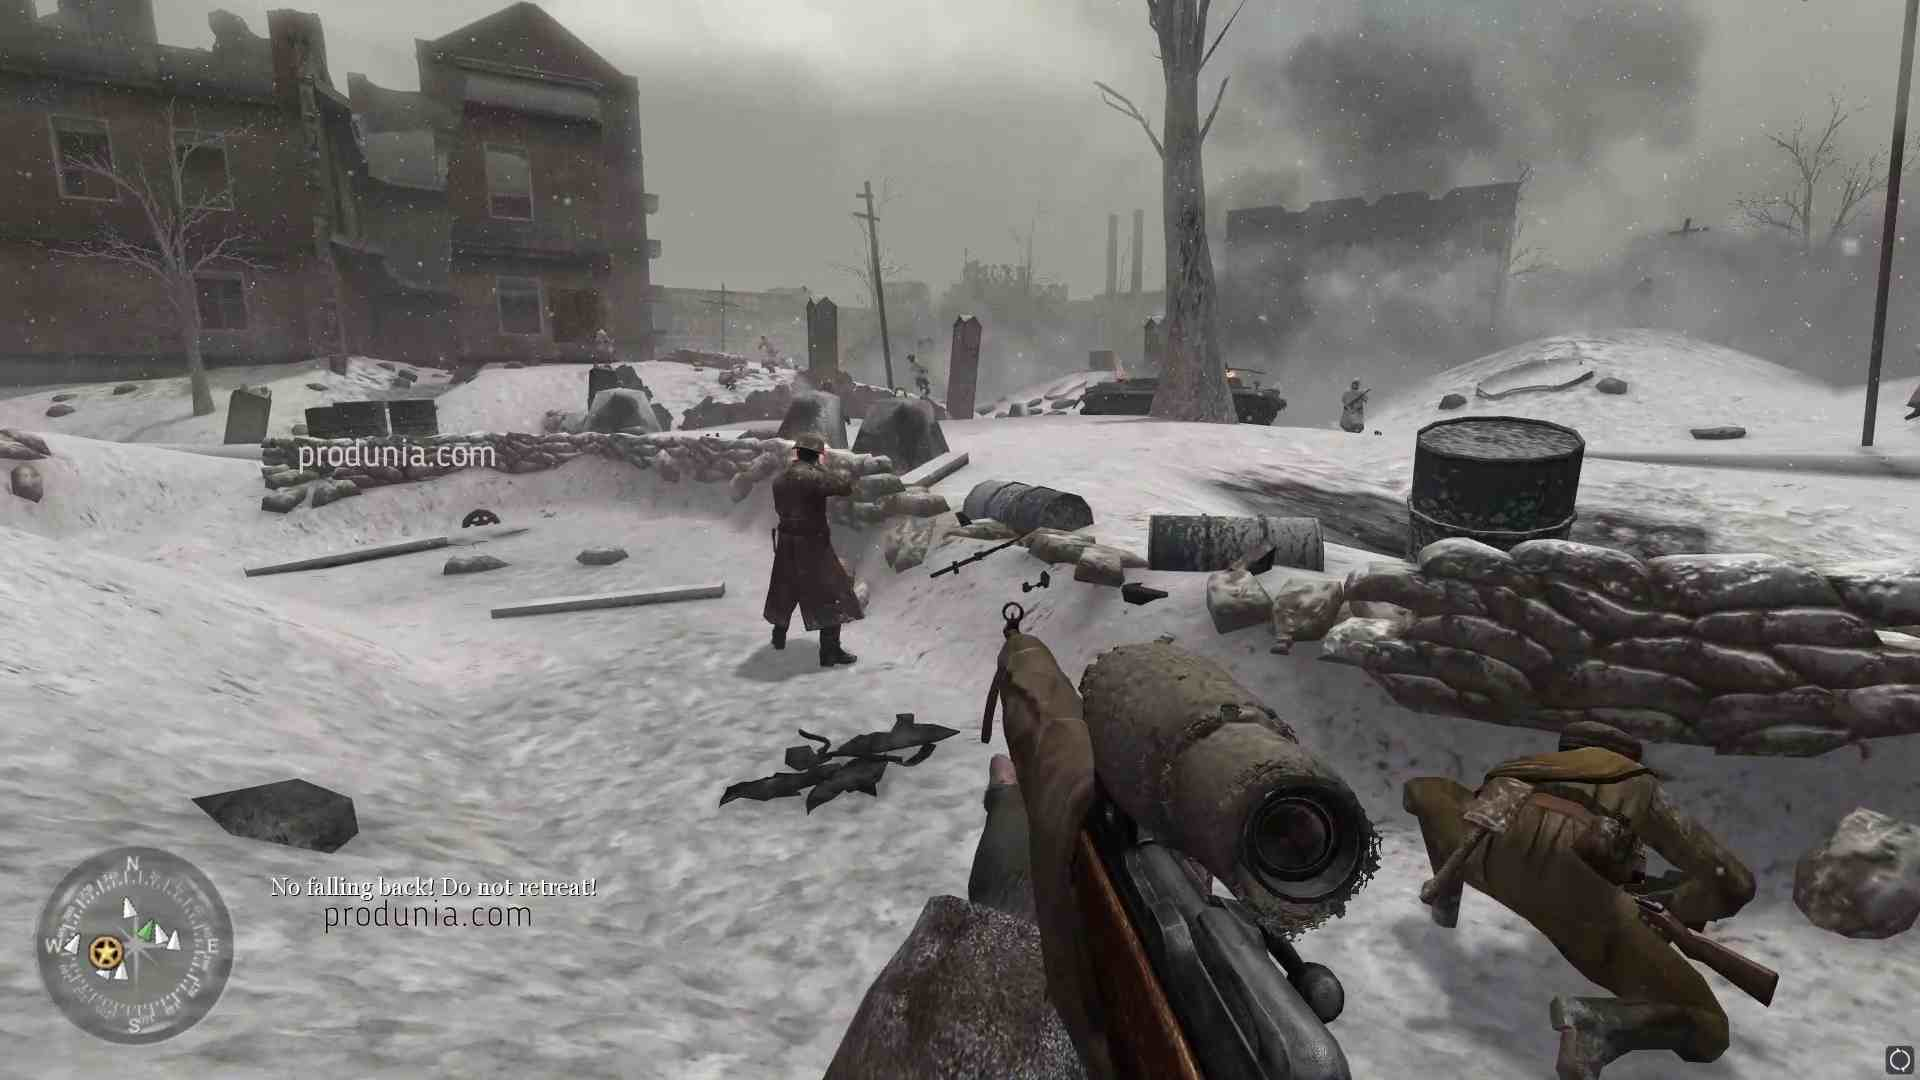 Call of duty 2 game requirements for pc salary of casino dealer in resorts world manila